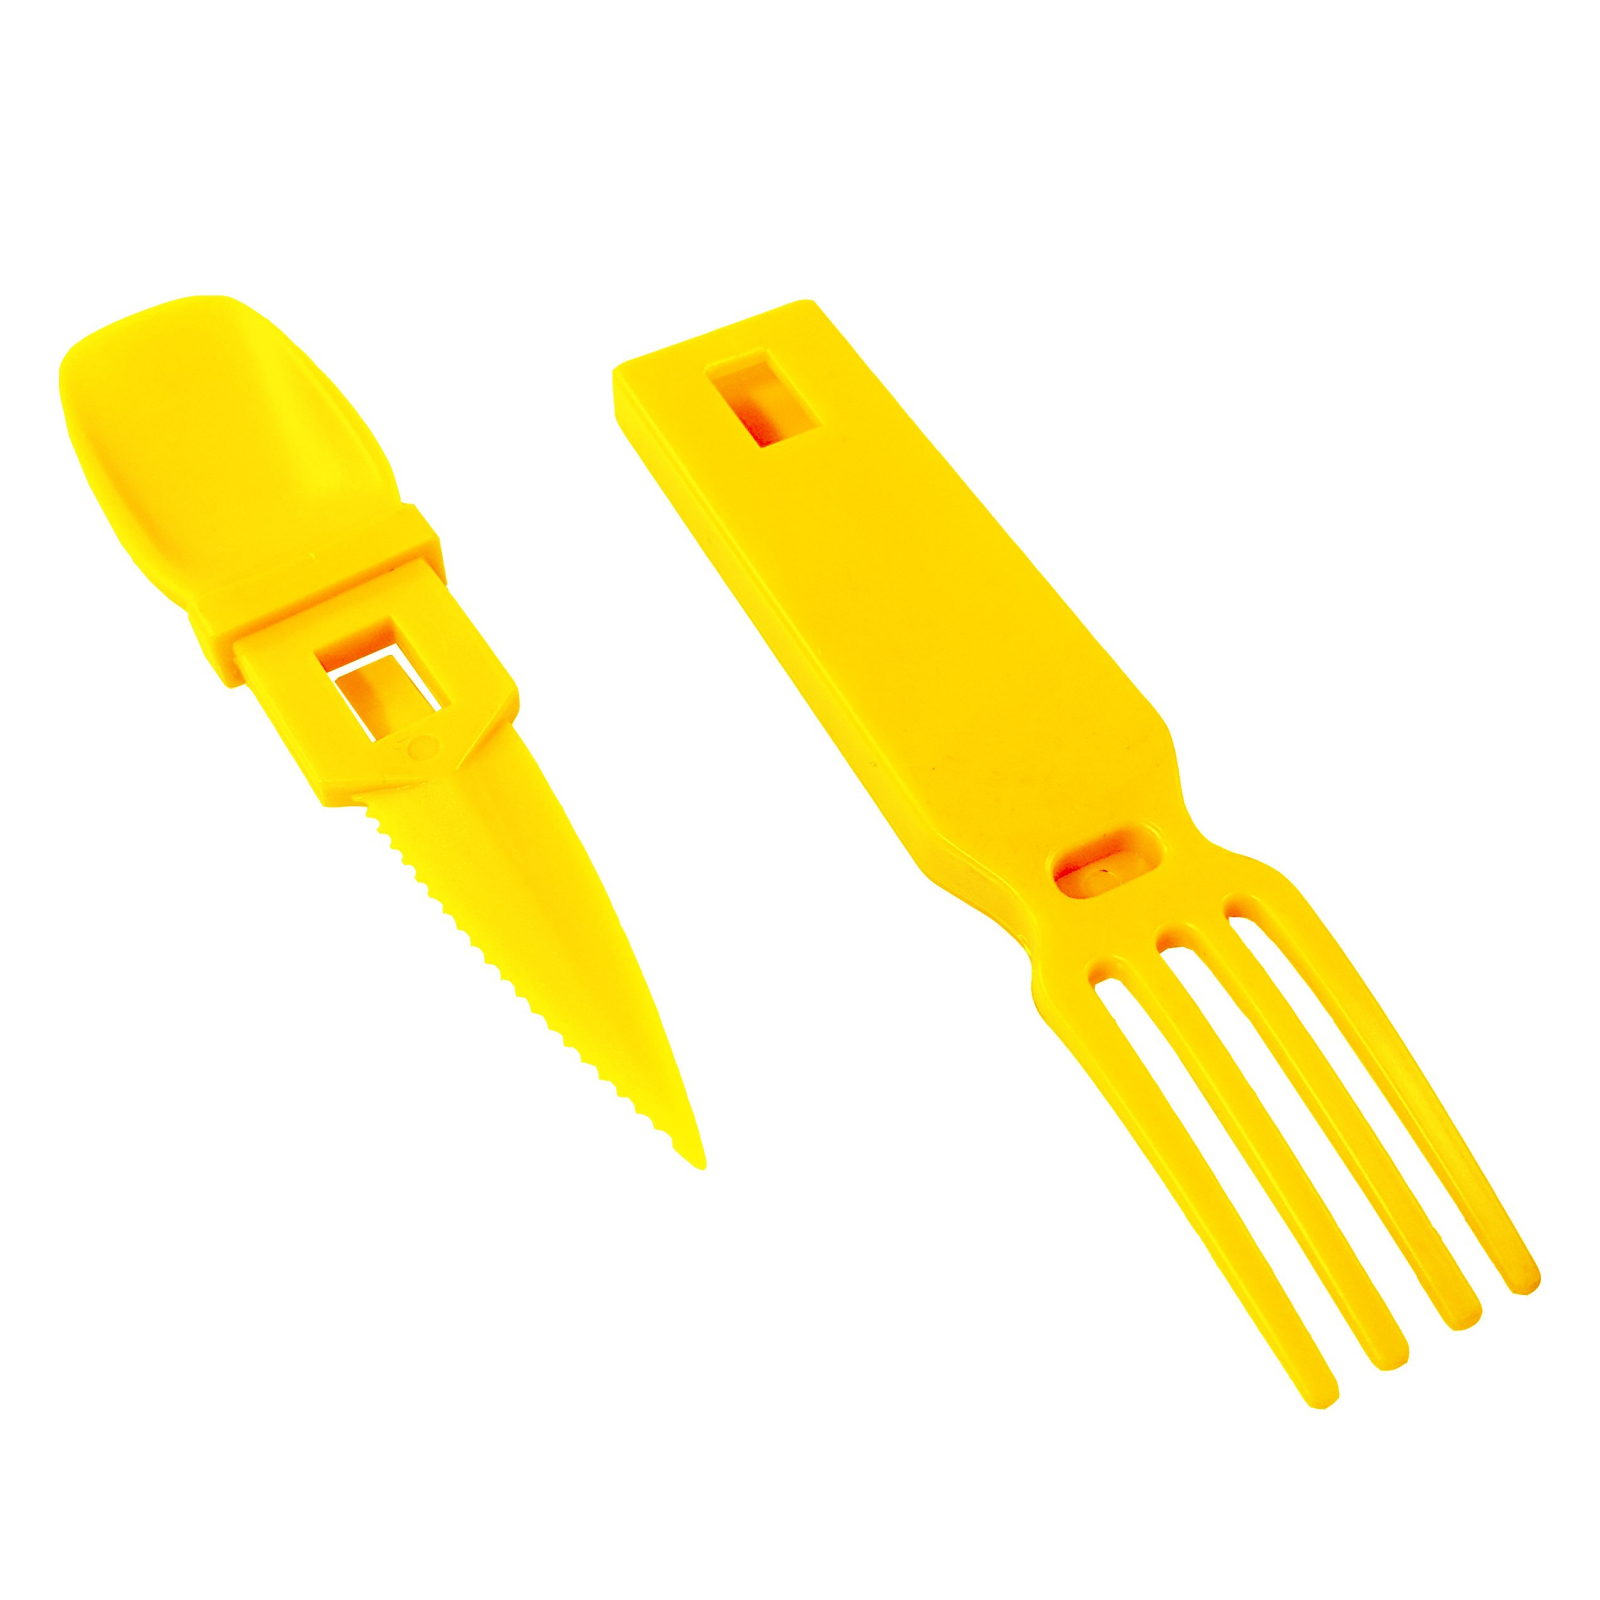 ASR Outdoor Snapatite 3 in 1 Utensil Camping Tool - Yellow